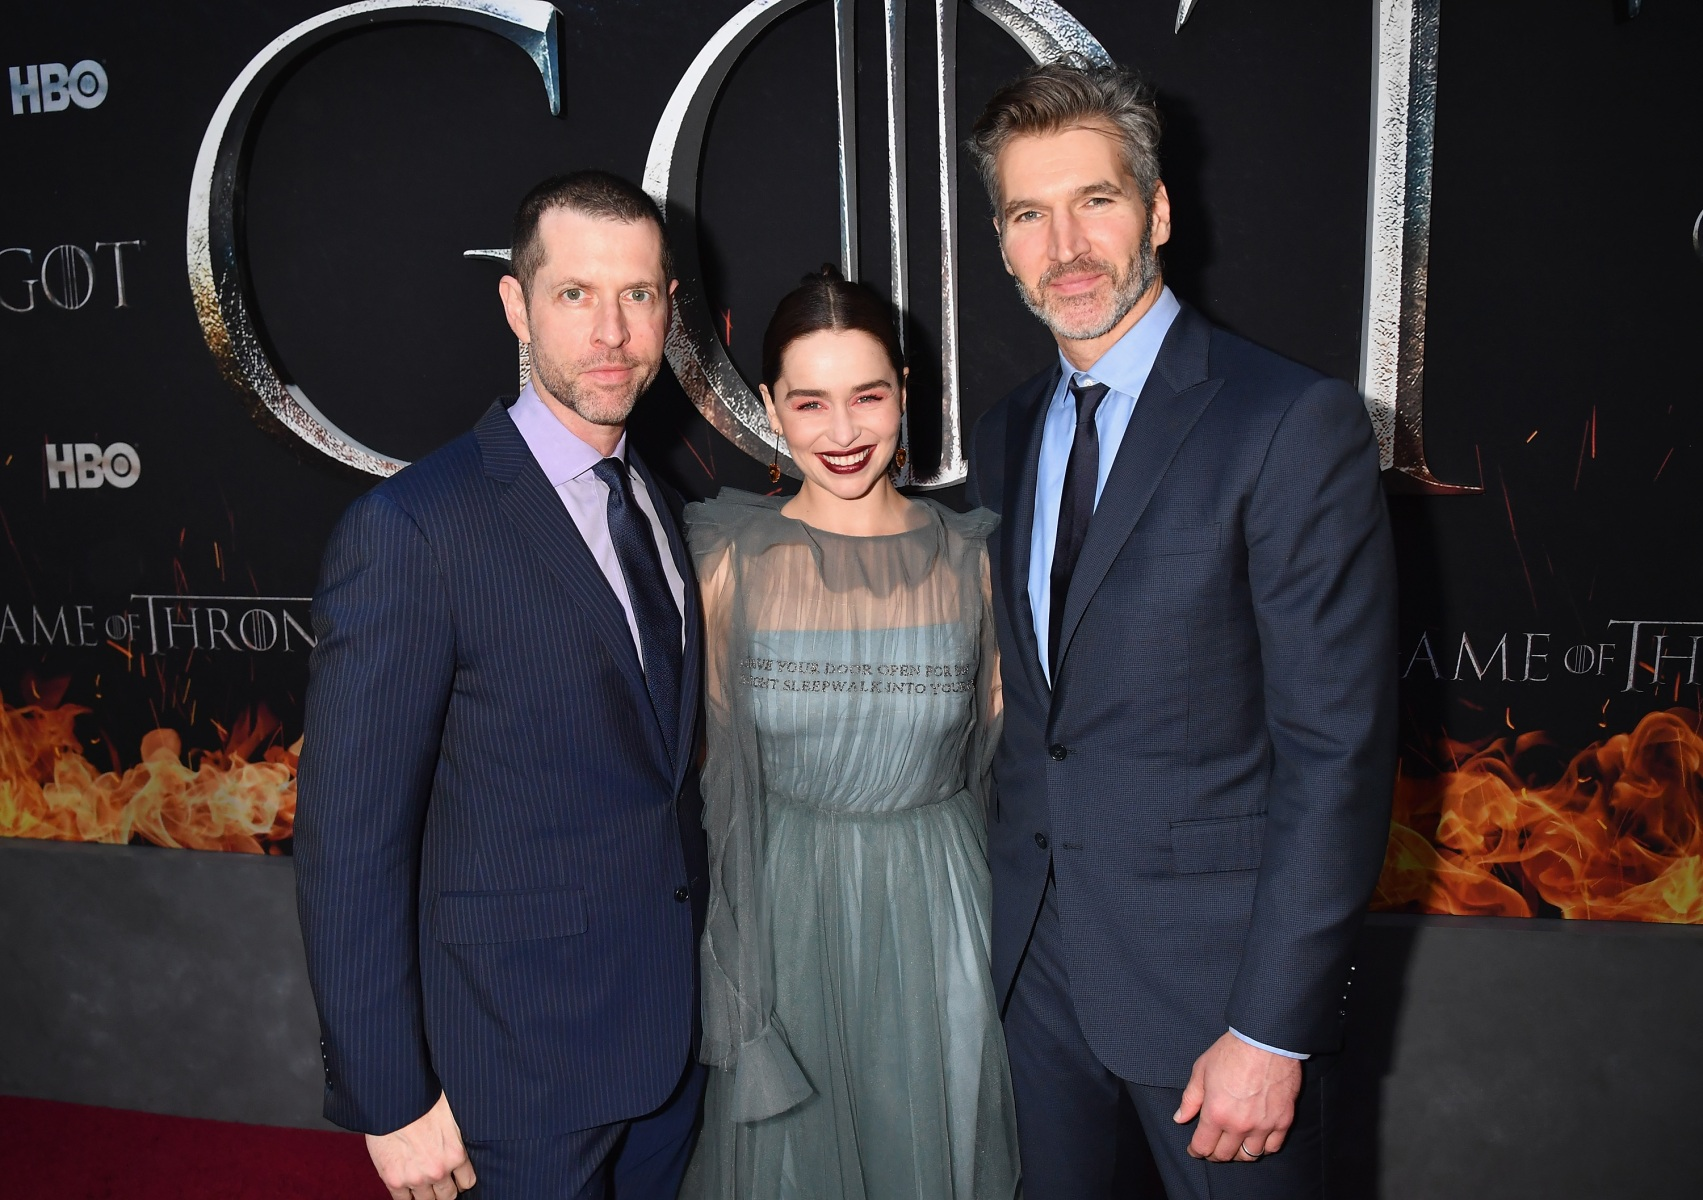 """Producers D.B Weiss (l) and David Benioff (r) and Emilia Clarke attend the """"Game Of Thrones"""" Season 8 NY Premiere."""